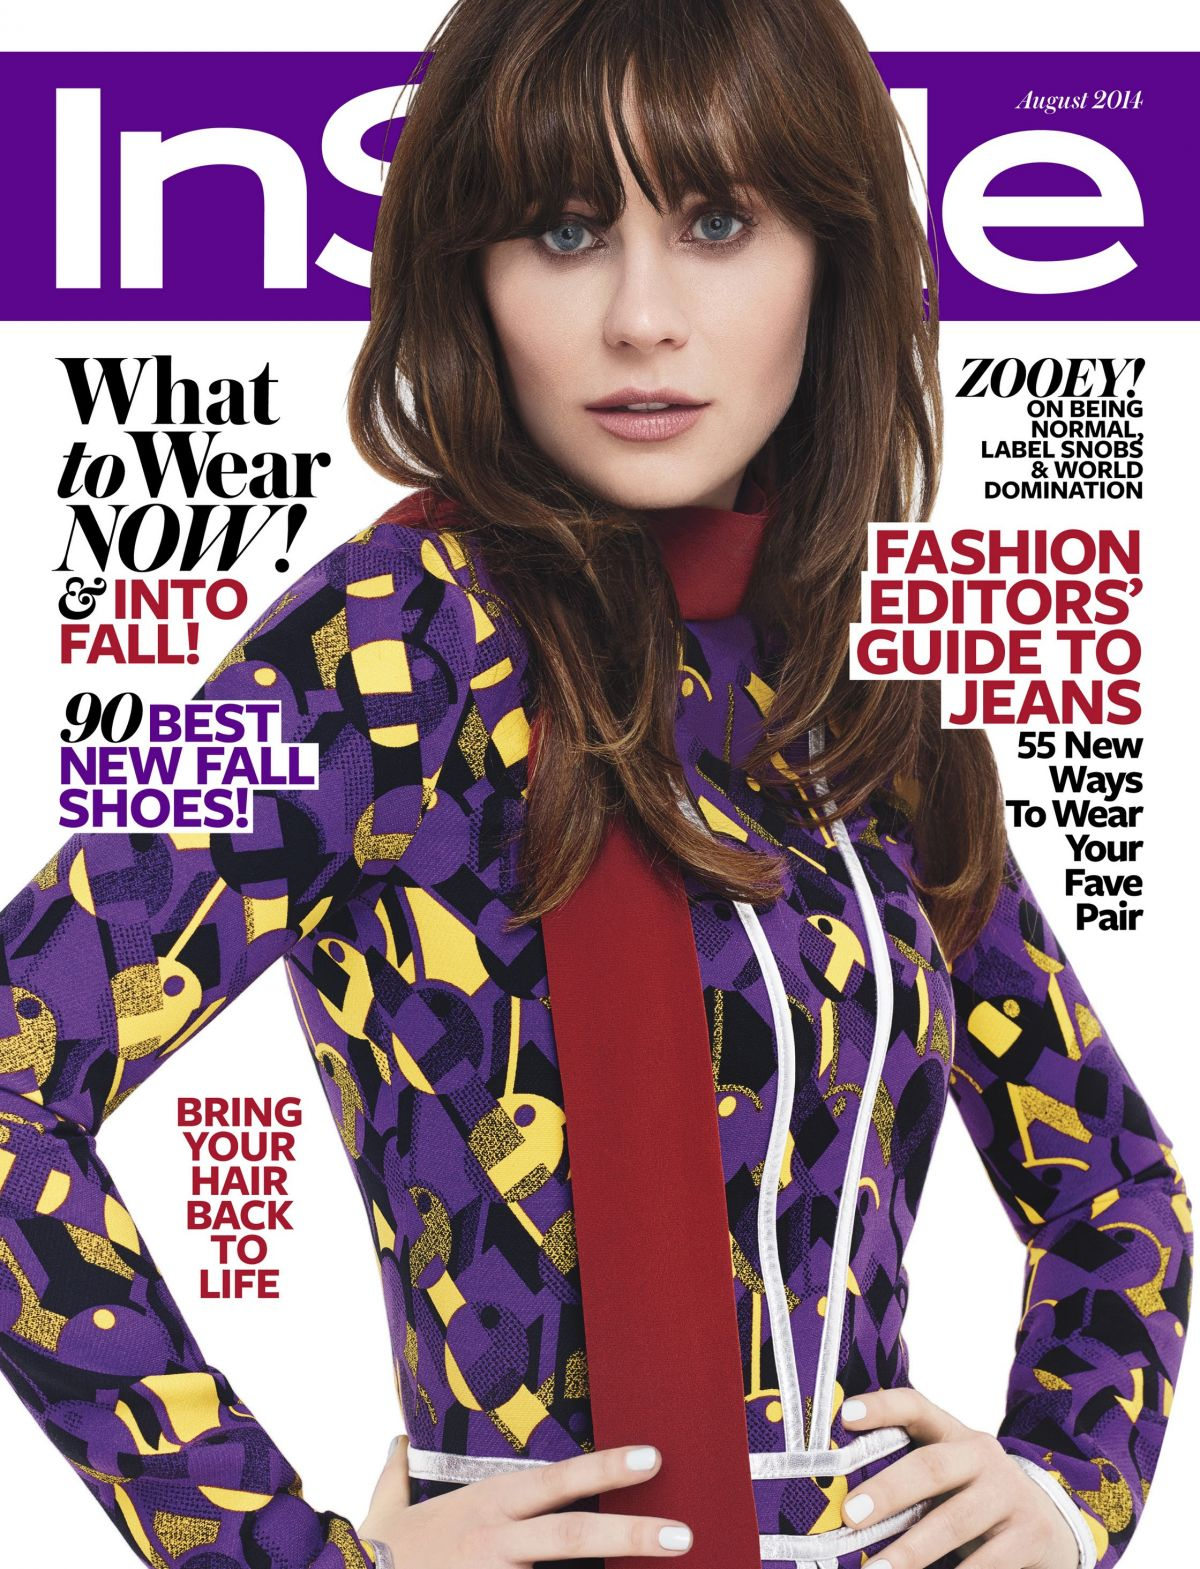 ZOOEY DESCHANEL in Instyle Magazine, August 2014 Issue